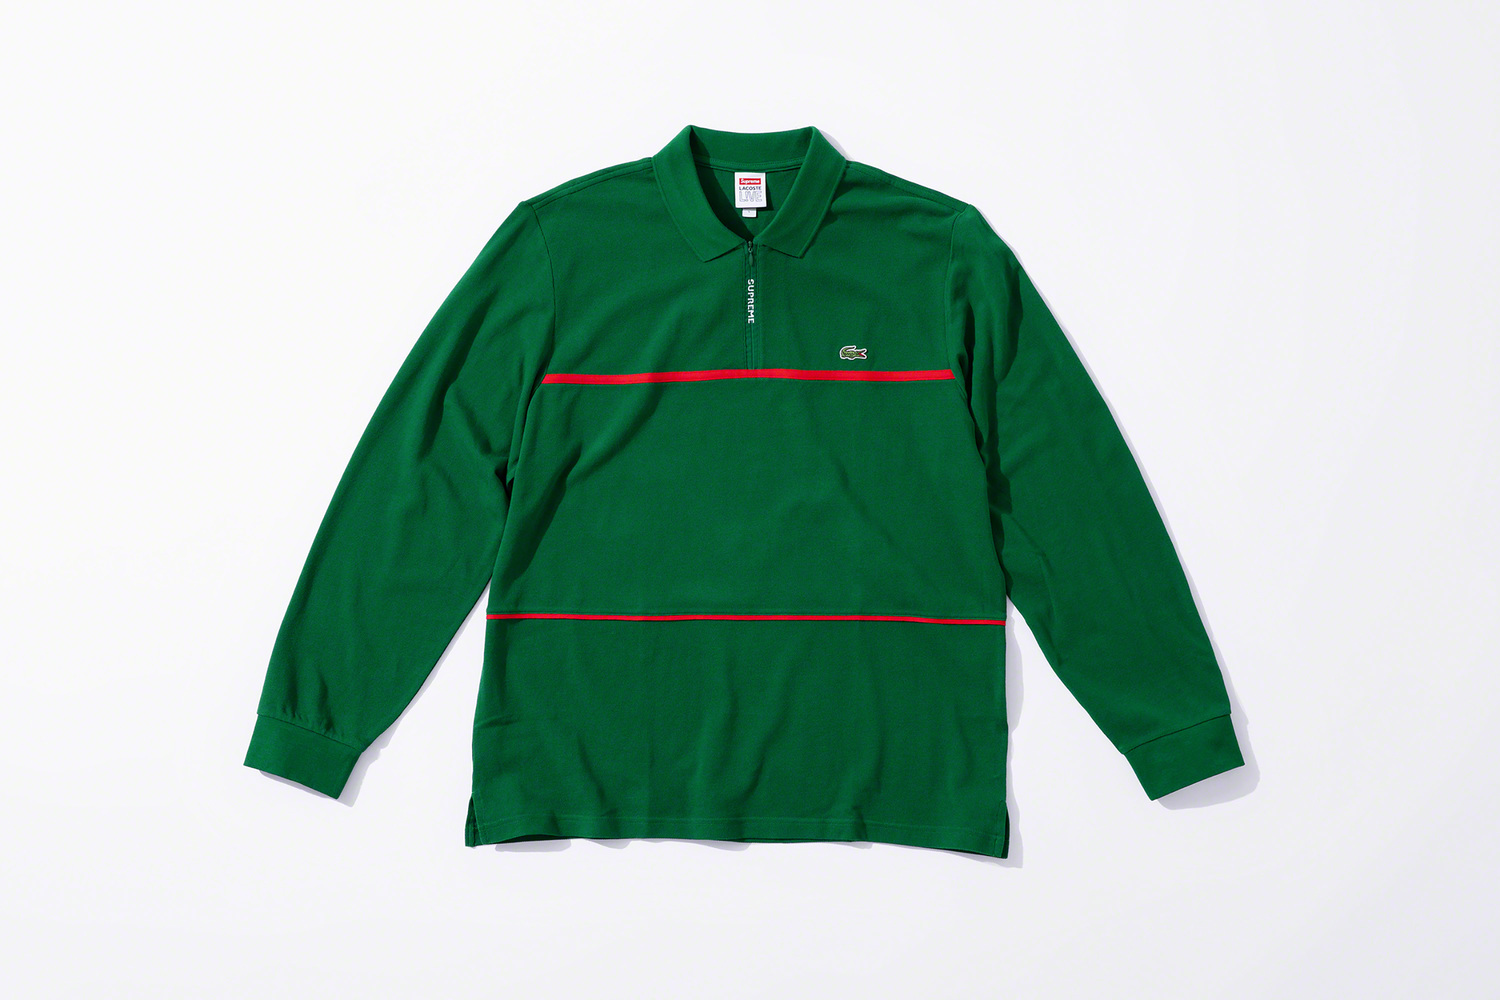 Supreme & LACOSTE Join For a Fire Fall 2019 Collaboration